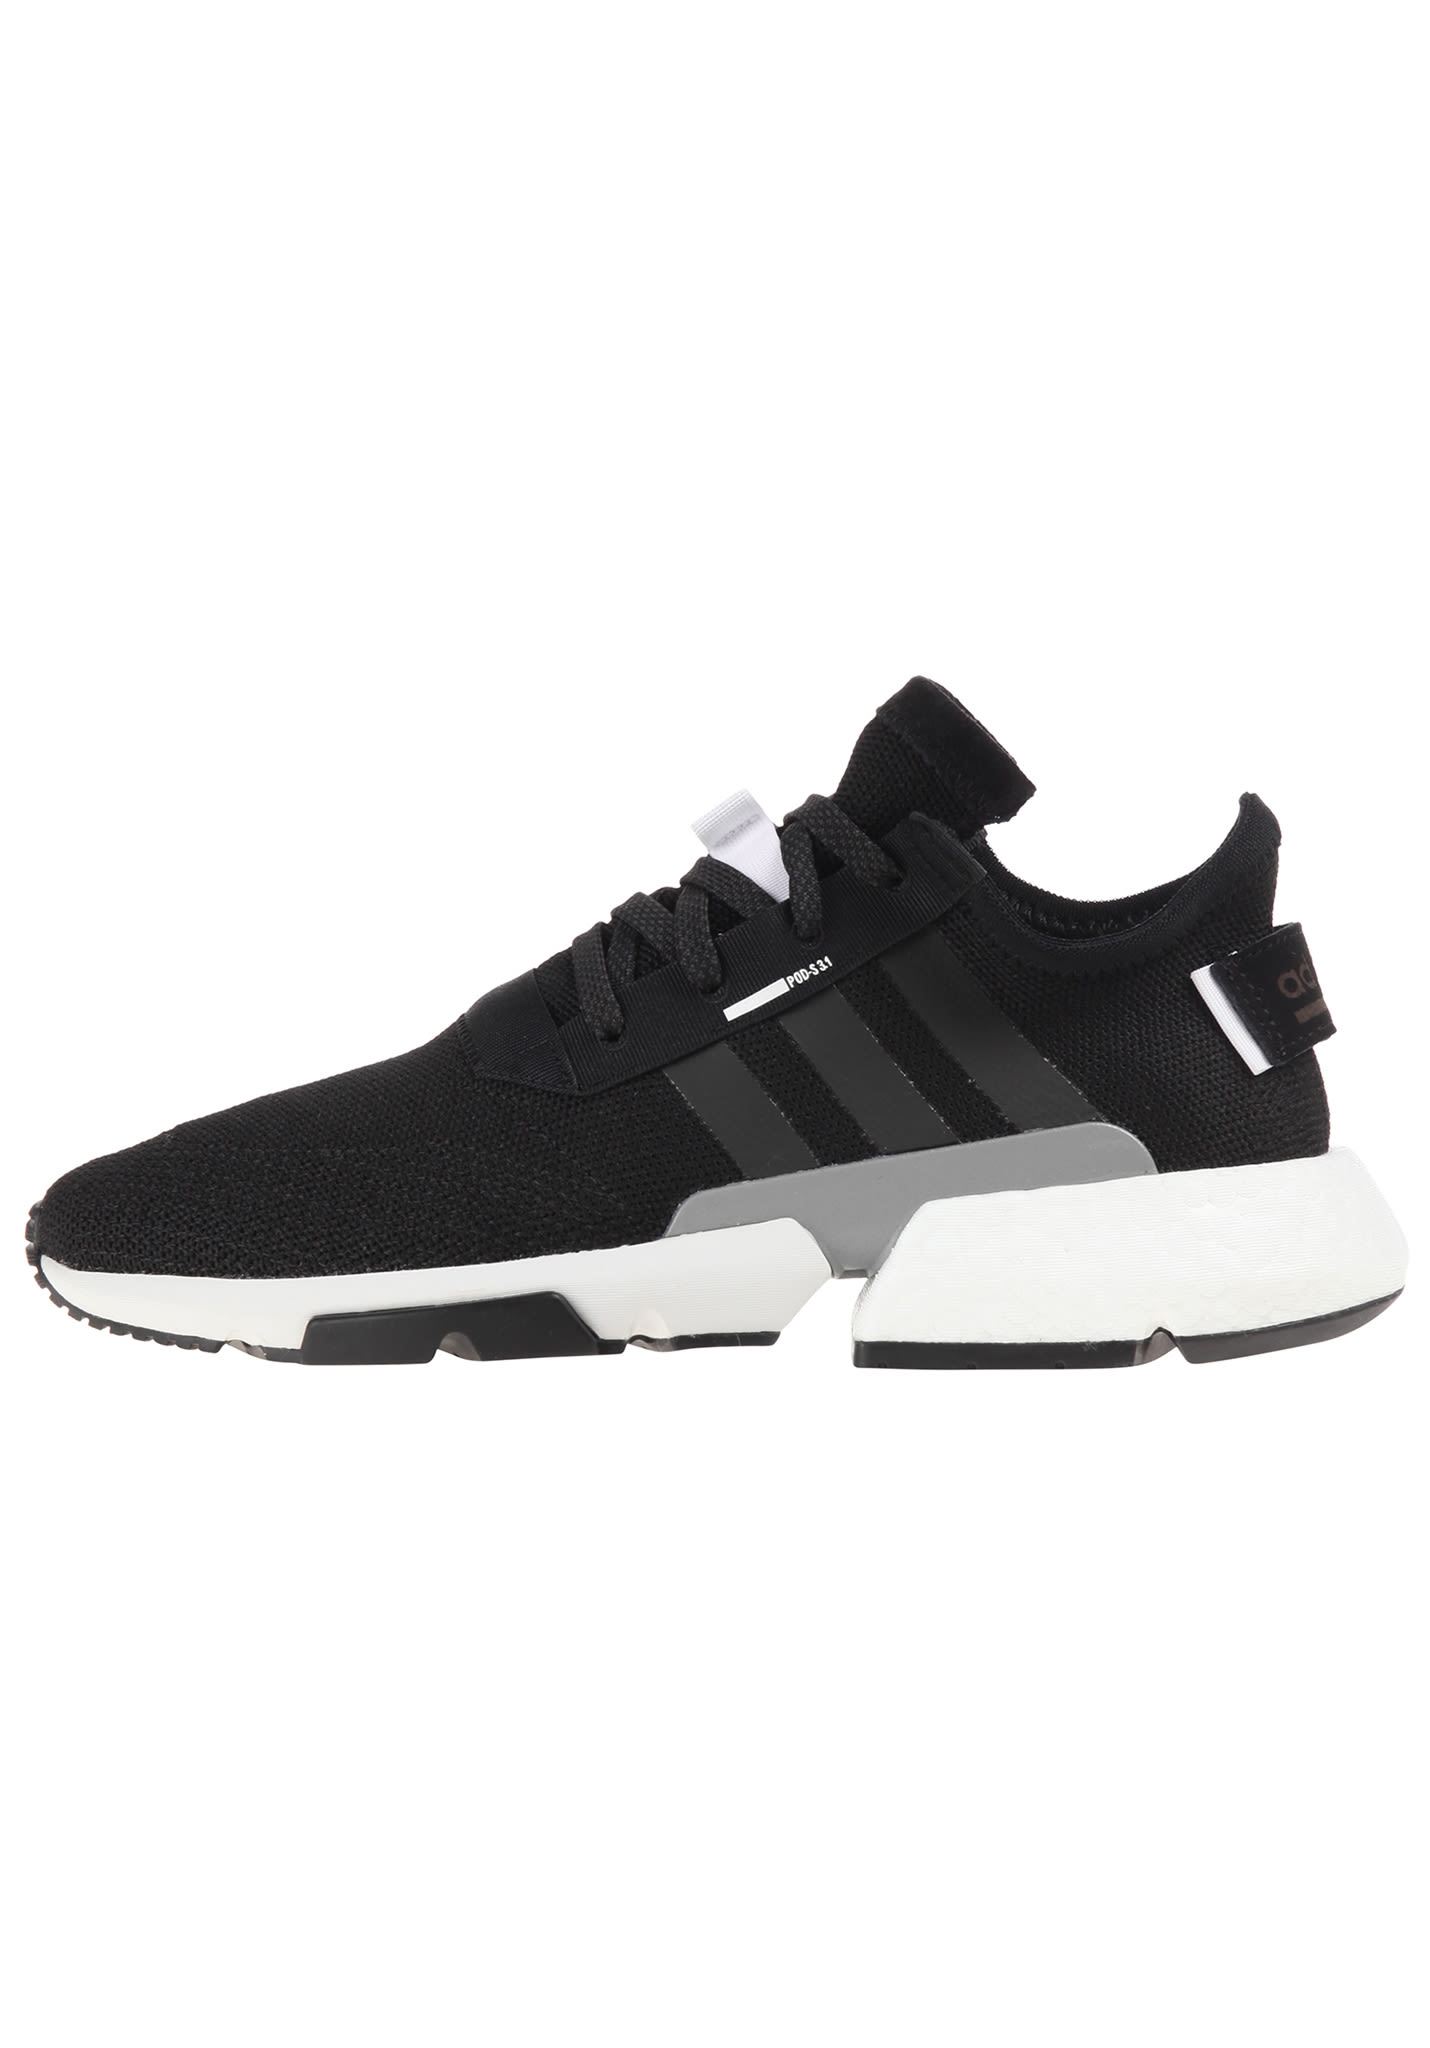 Homm Originals 1Baskets s3 Pod Adidas kTXZuPiO